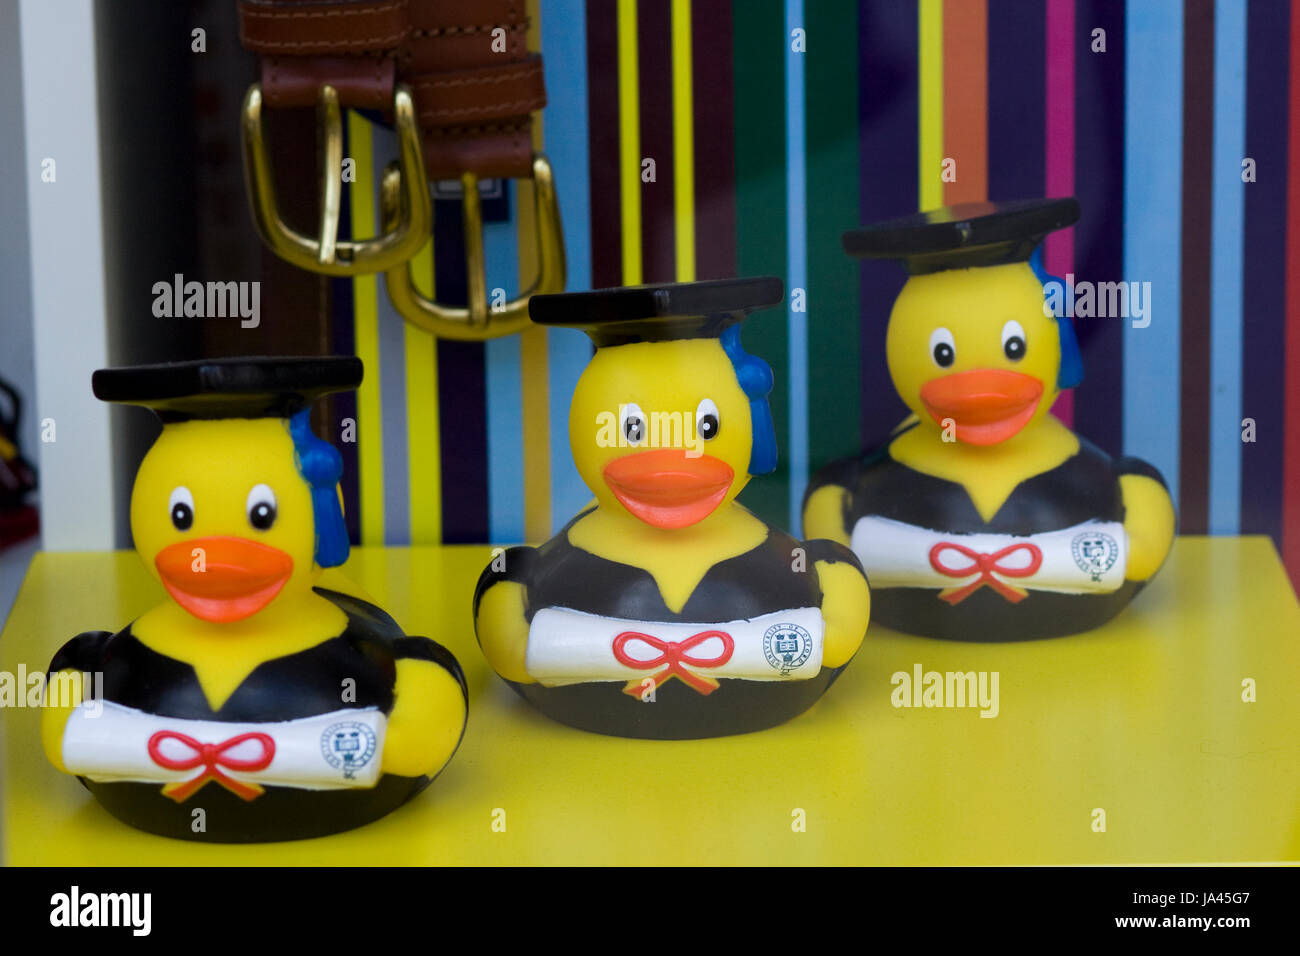 Rubber Ducks dressed in Black graduation gowns diplomas - Stock Image